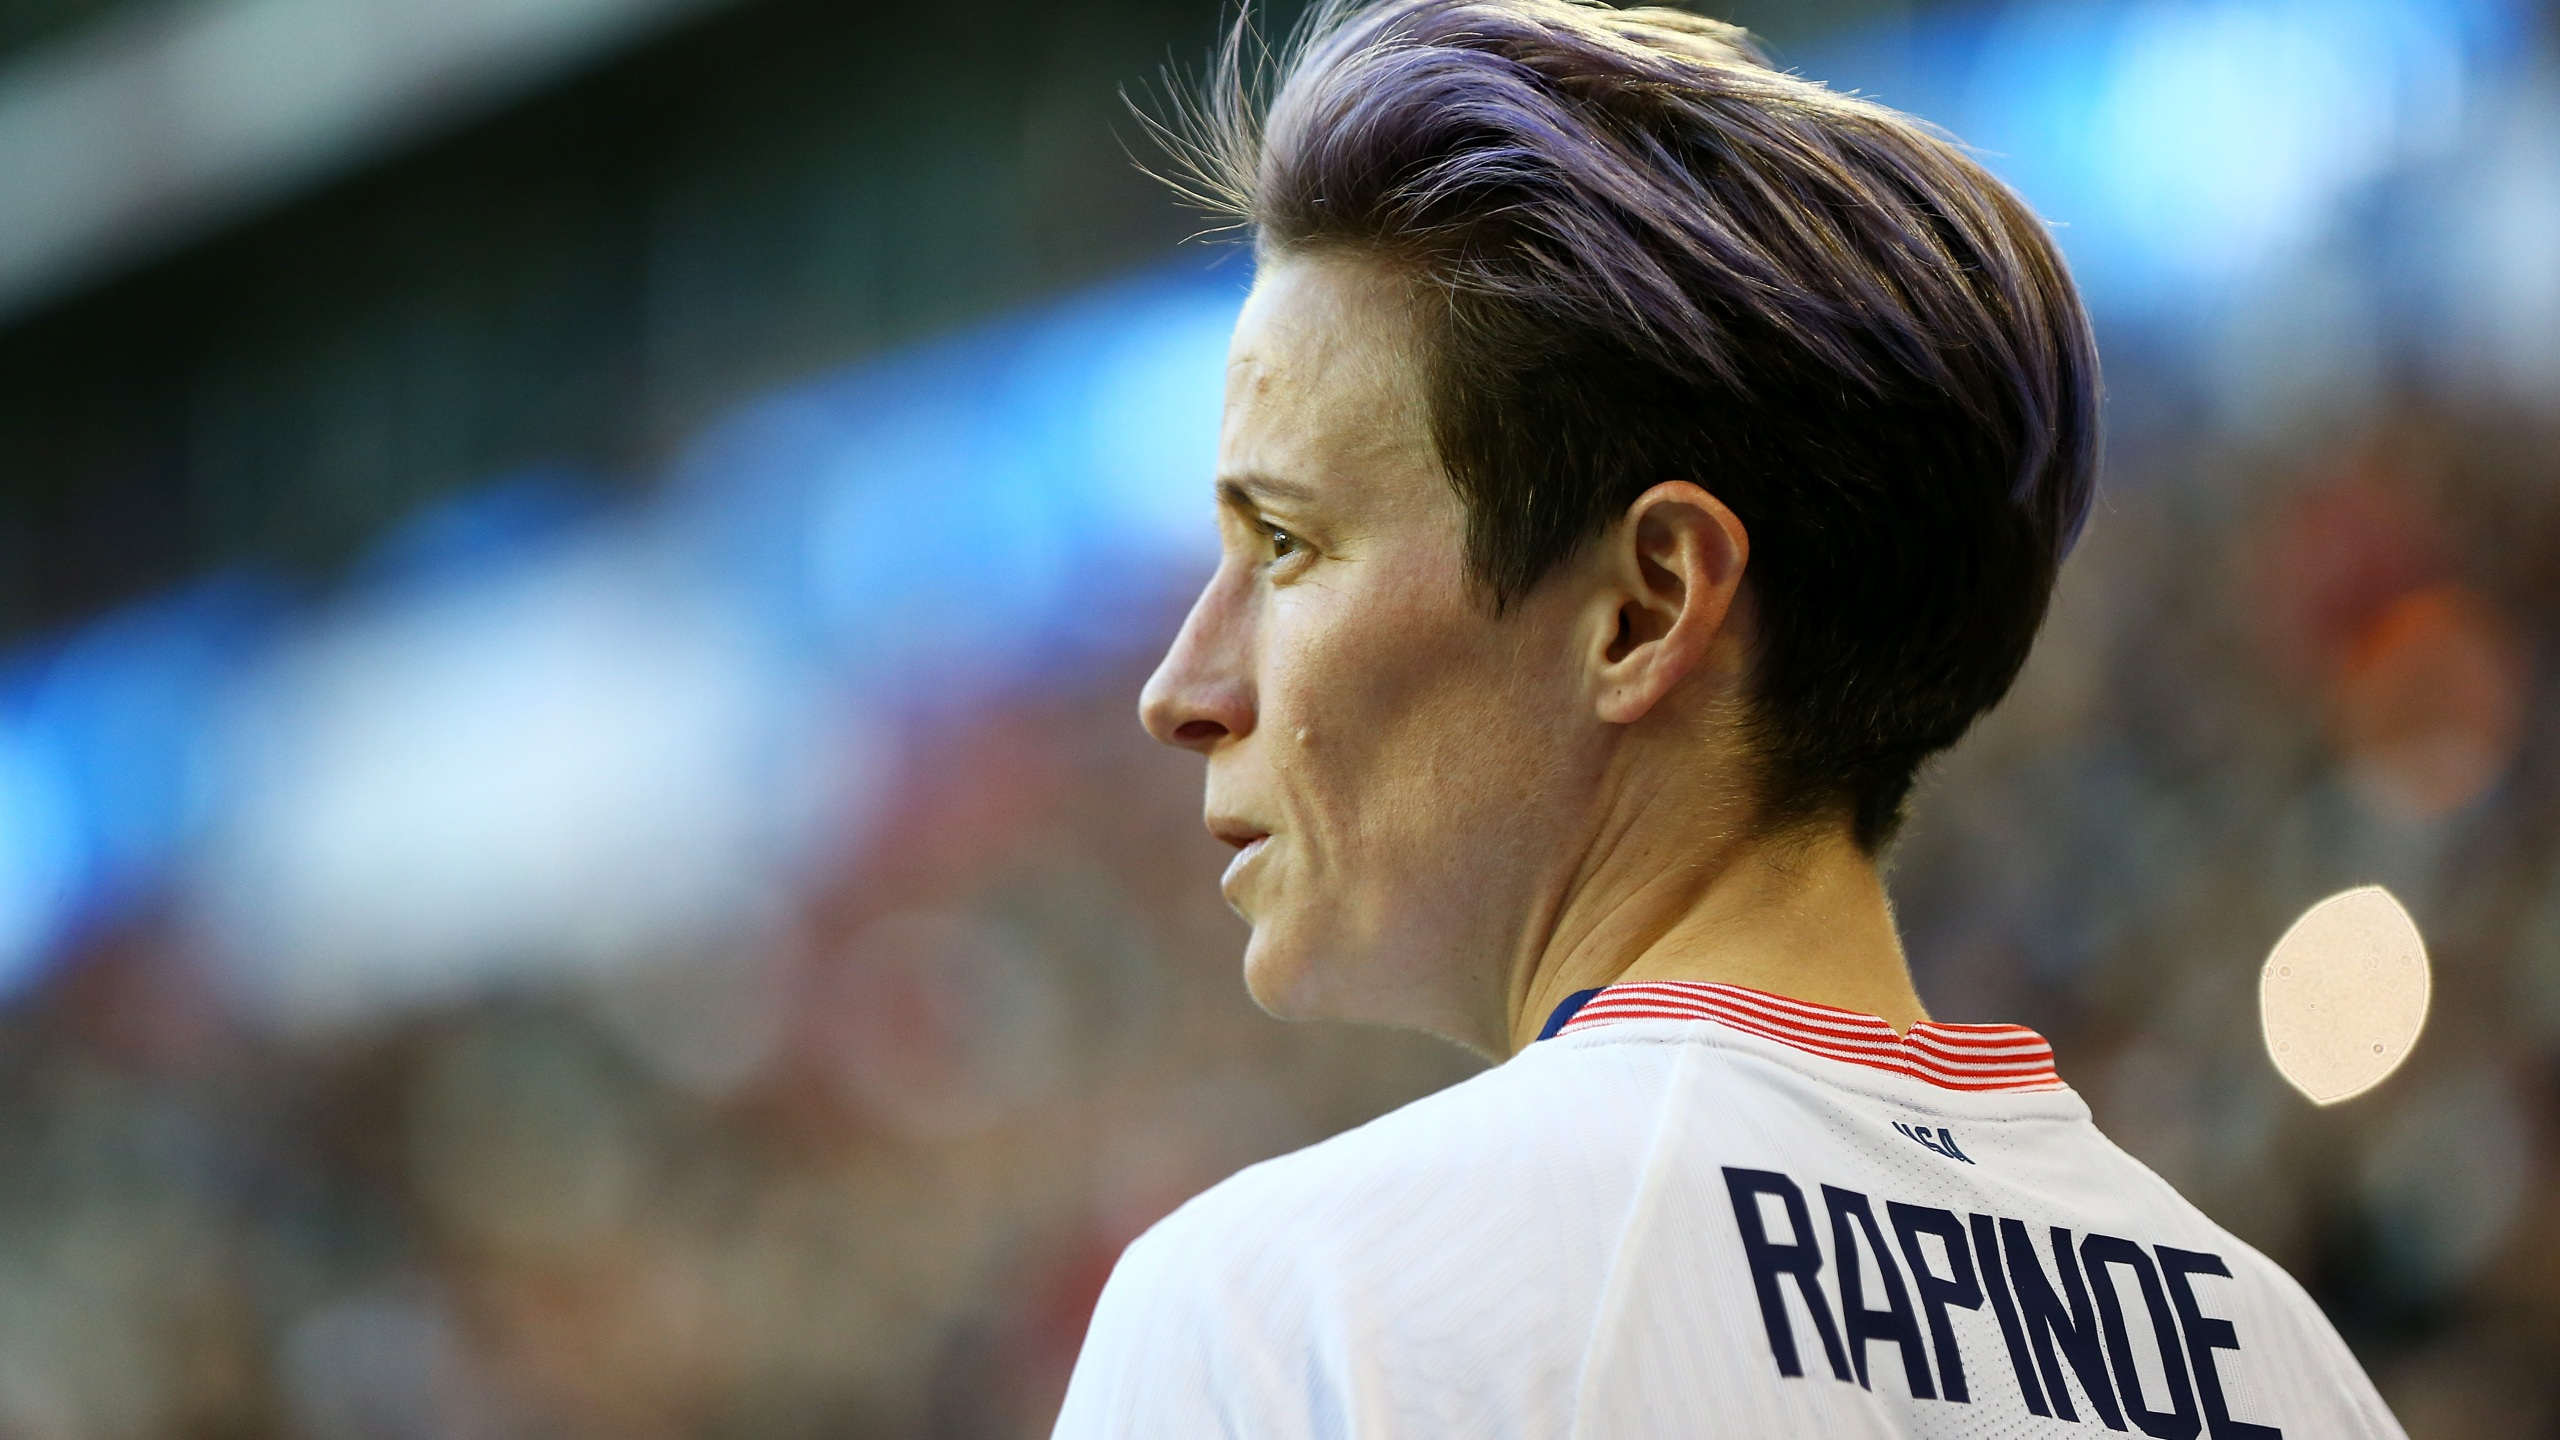 U.S. player Megan Rapinoe plays in a match against Spain at Red Bull Arena on March 8, 2020 in Harrison, New Jersey. (Mike Stobe/Getty Images)